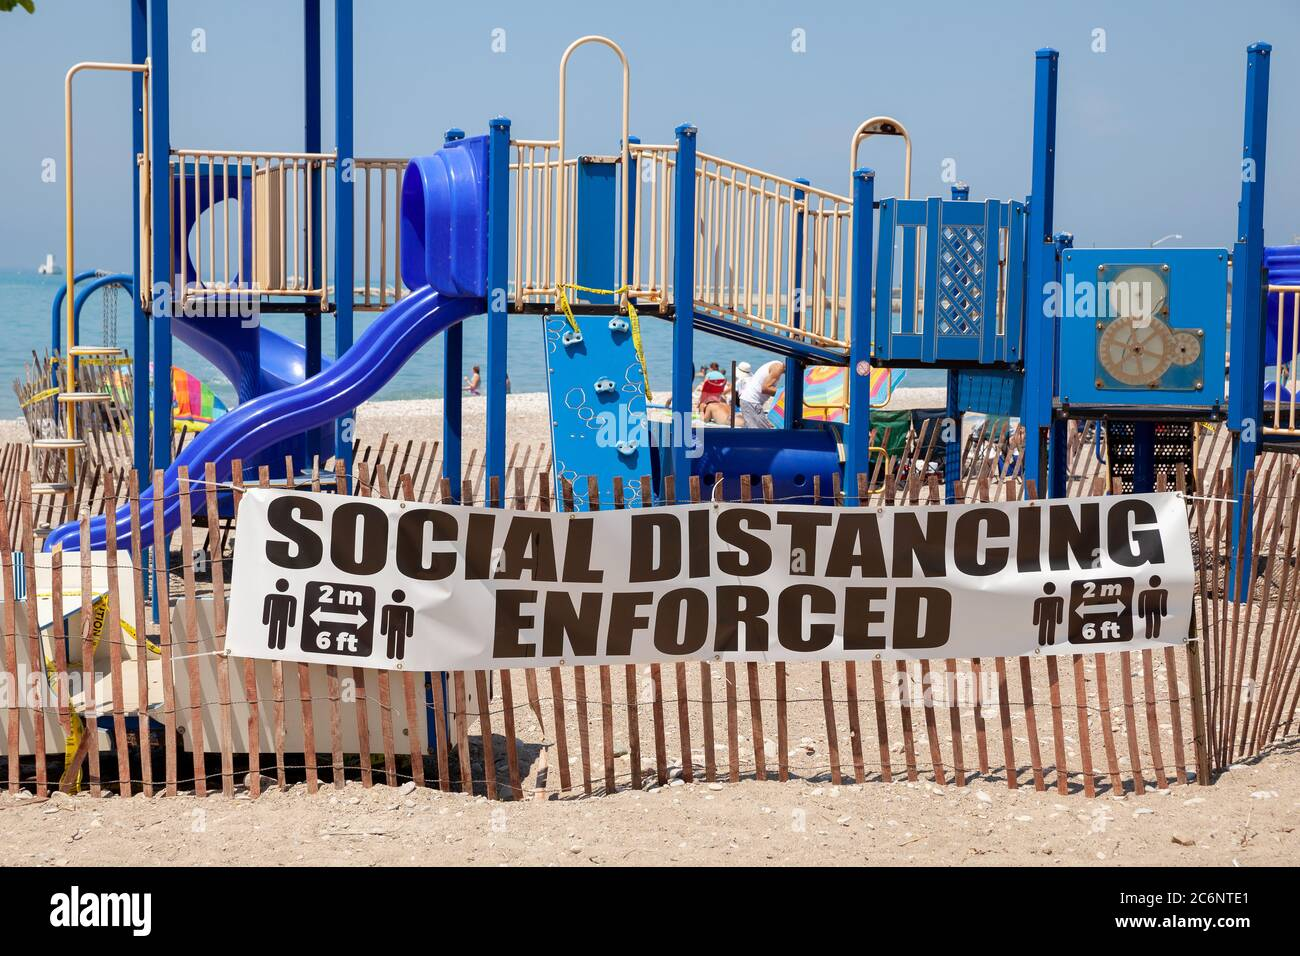 COVID-19 Goderich Ontario Canada Municipal Sign Social Distancing Enforced Posted At The Beach Playground Area Of Town On Lake Huron Stock Photo